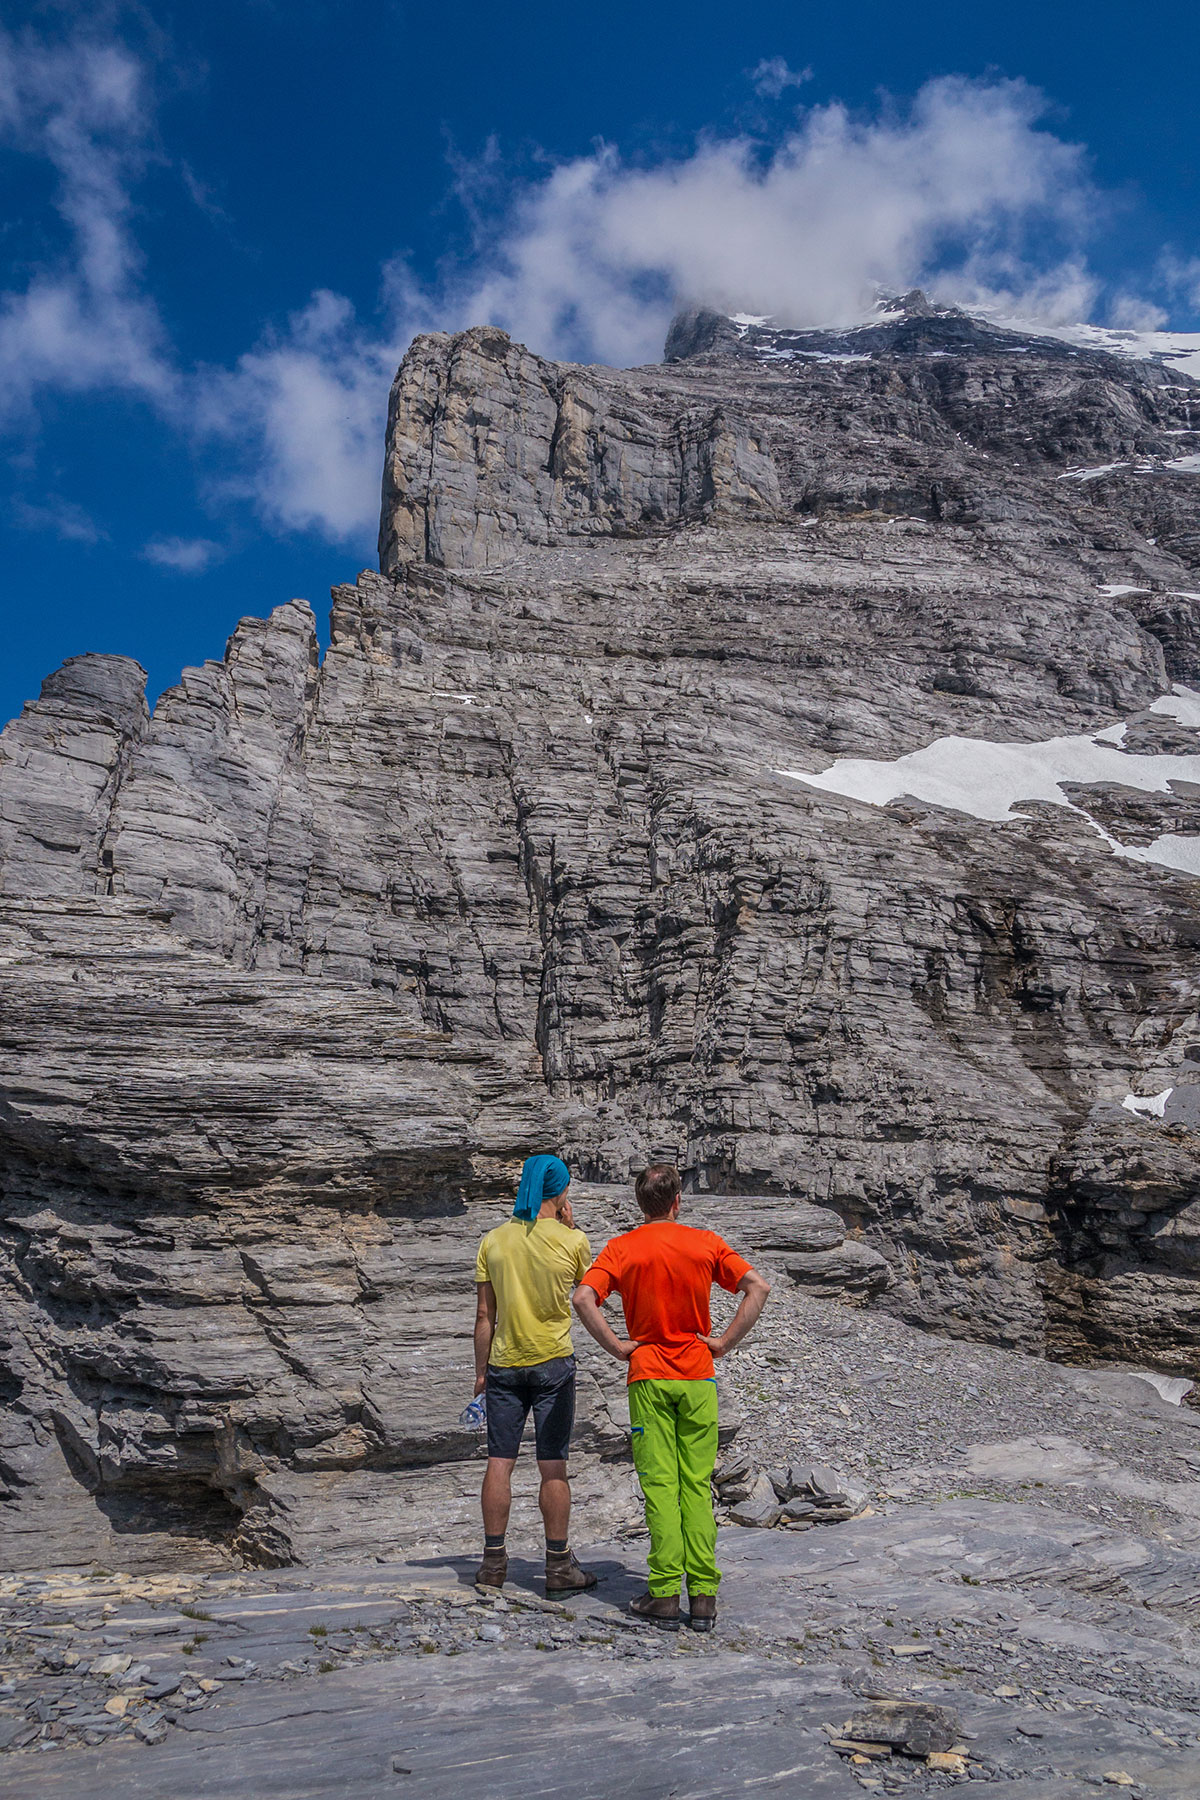 Mathias Weck and Felix Mehne before the ascent of Eiger north face on the route